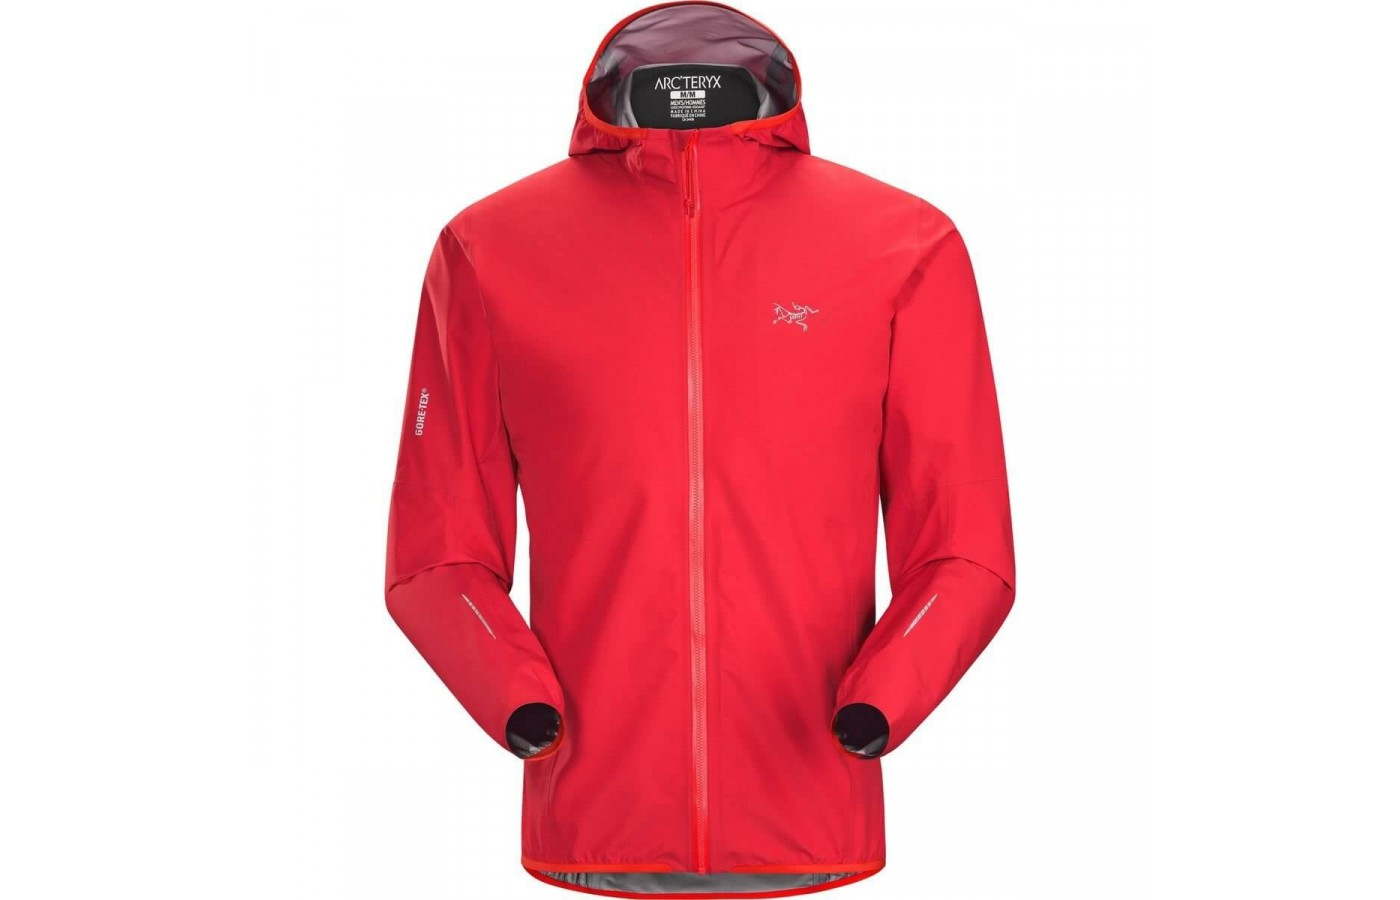 The Arc'teryx Norvan Jacket comes in Magma that is sure to turn heads